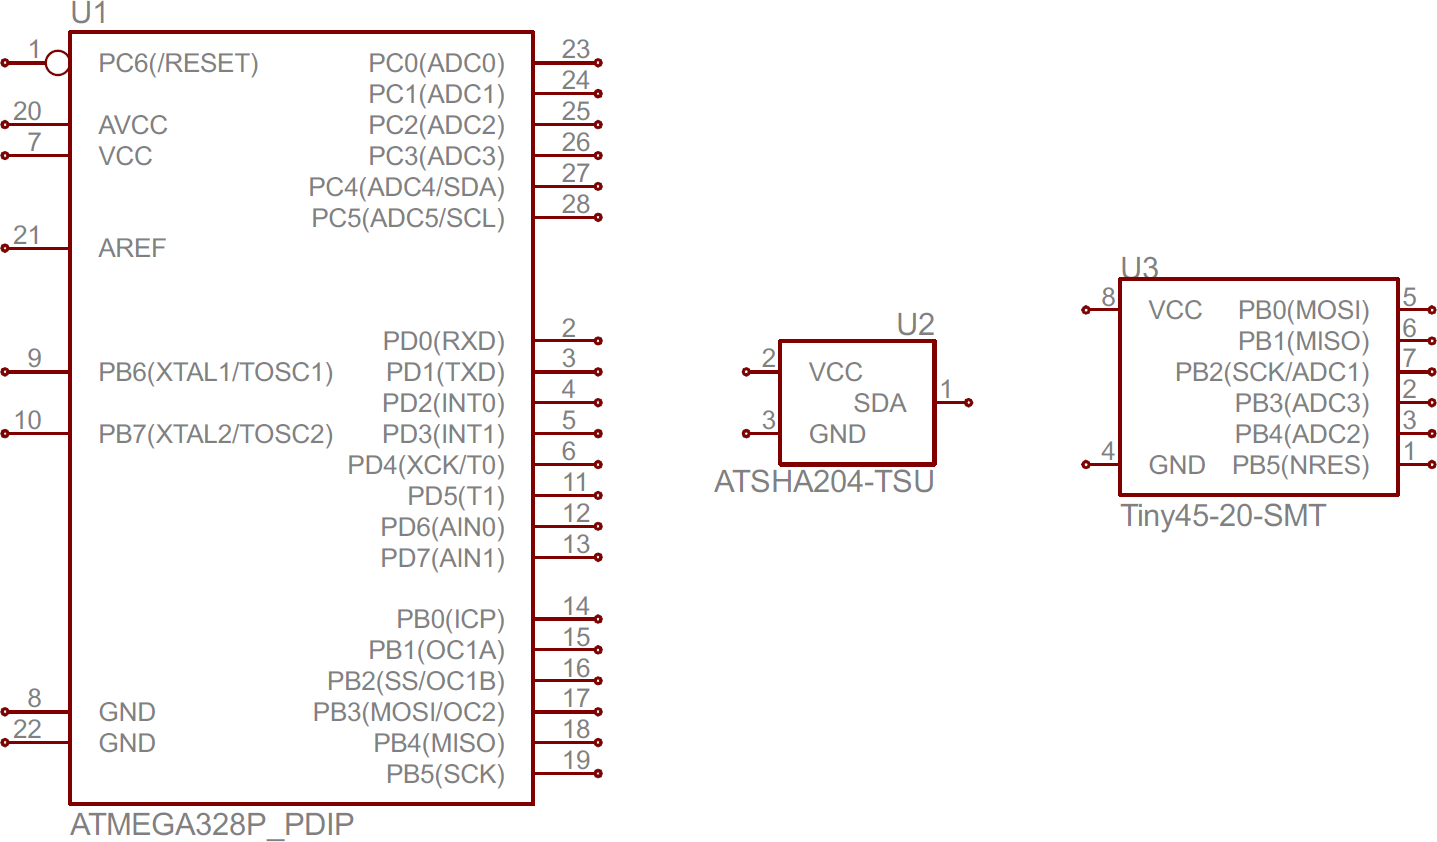 How To Read A Schematic Generic Auto Wiring Diagram Atmega328 Atsha204 And Attiny45 Ic Symbols